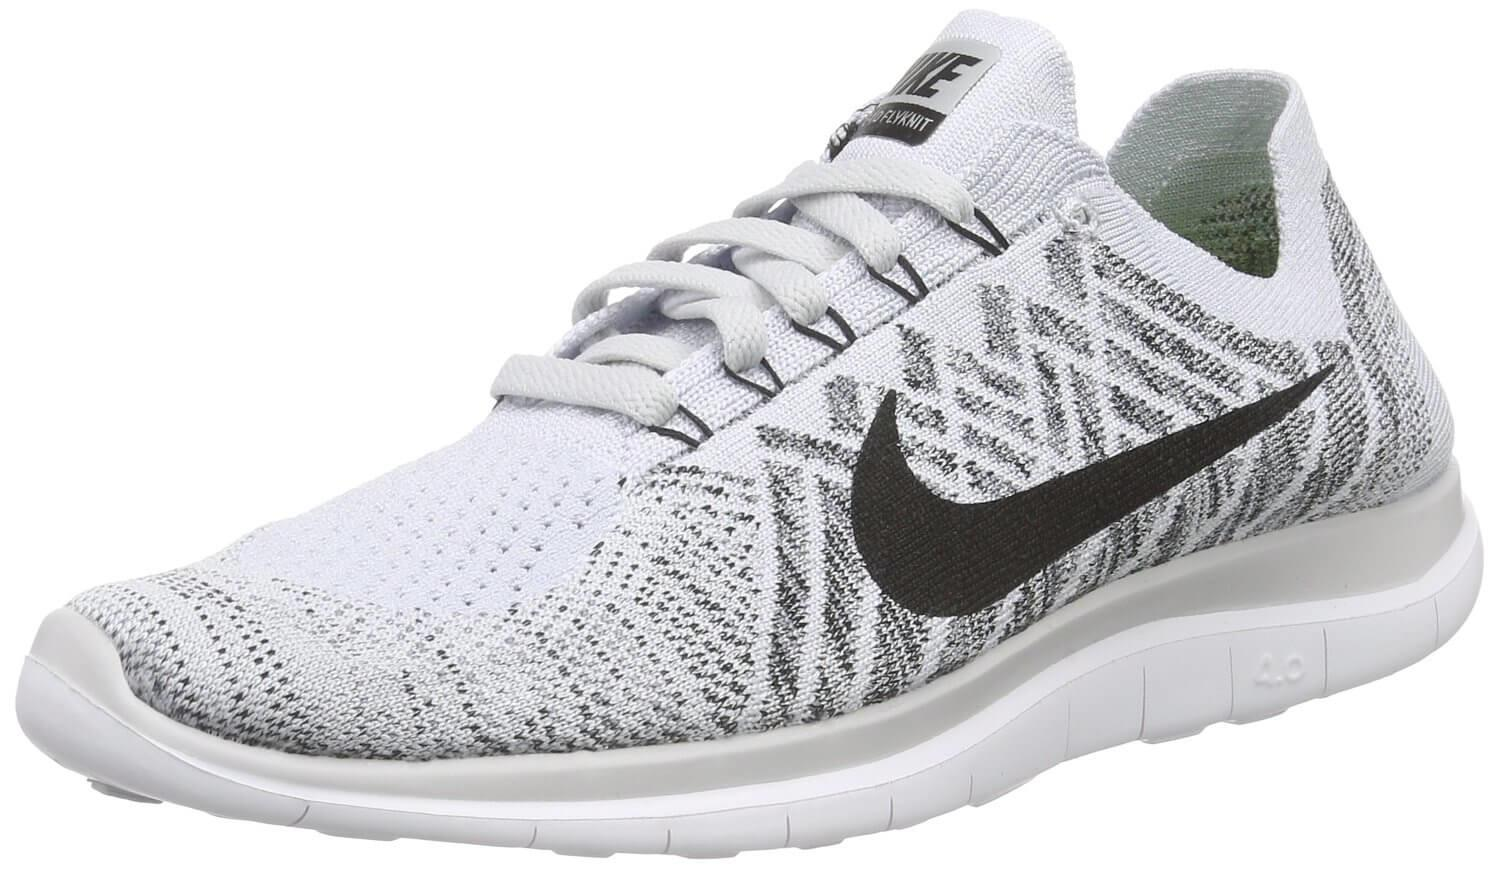 nike free flyknit 4 0 review buy or not in feb 2019 rh runnerclick com